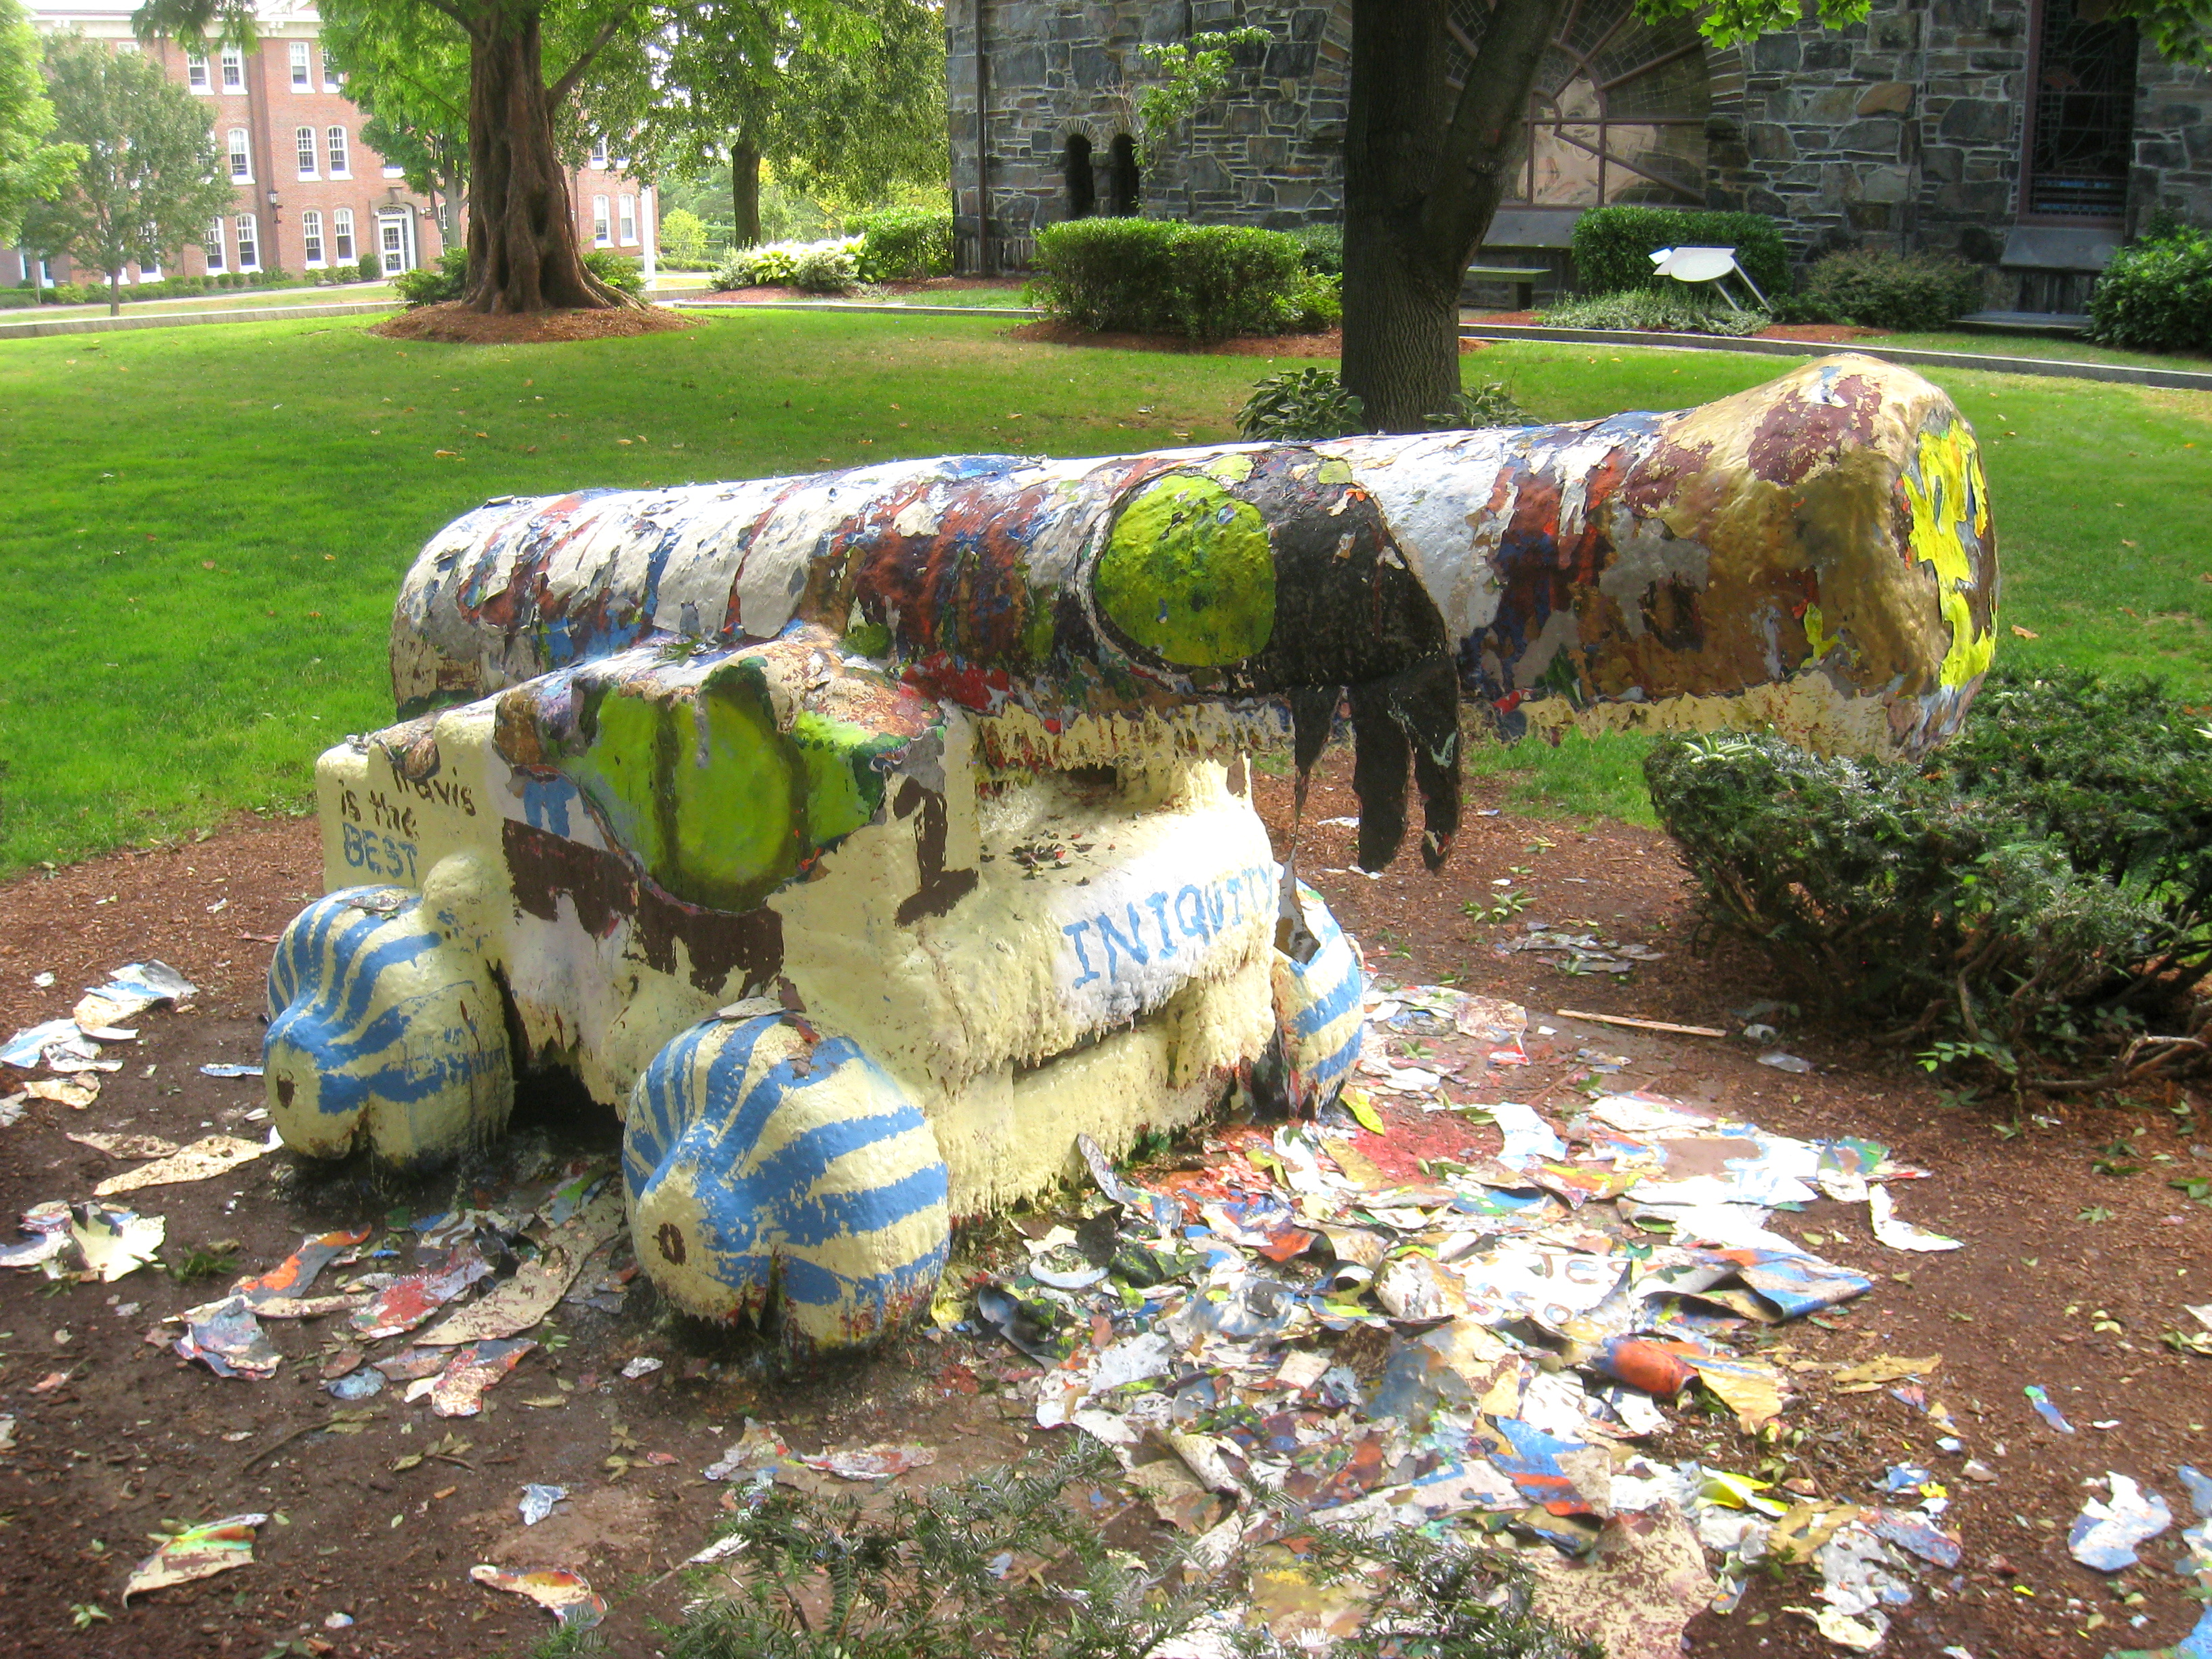 Cannon_-_Tufts_University_-_IMG_0930